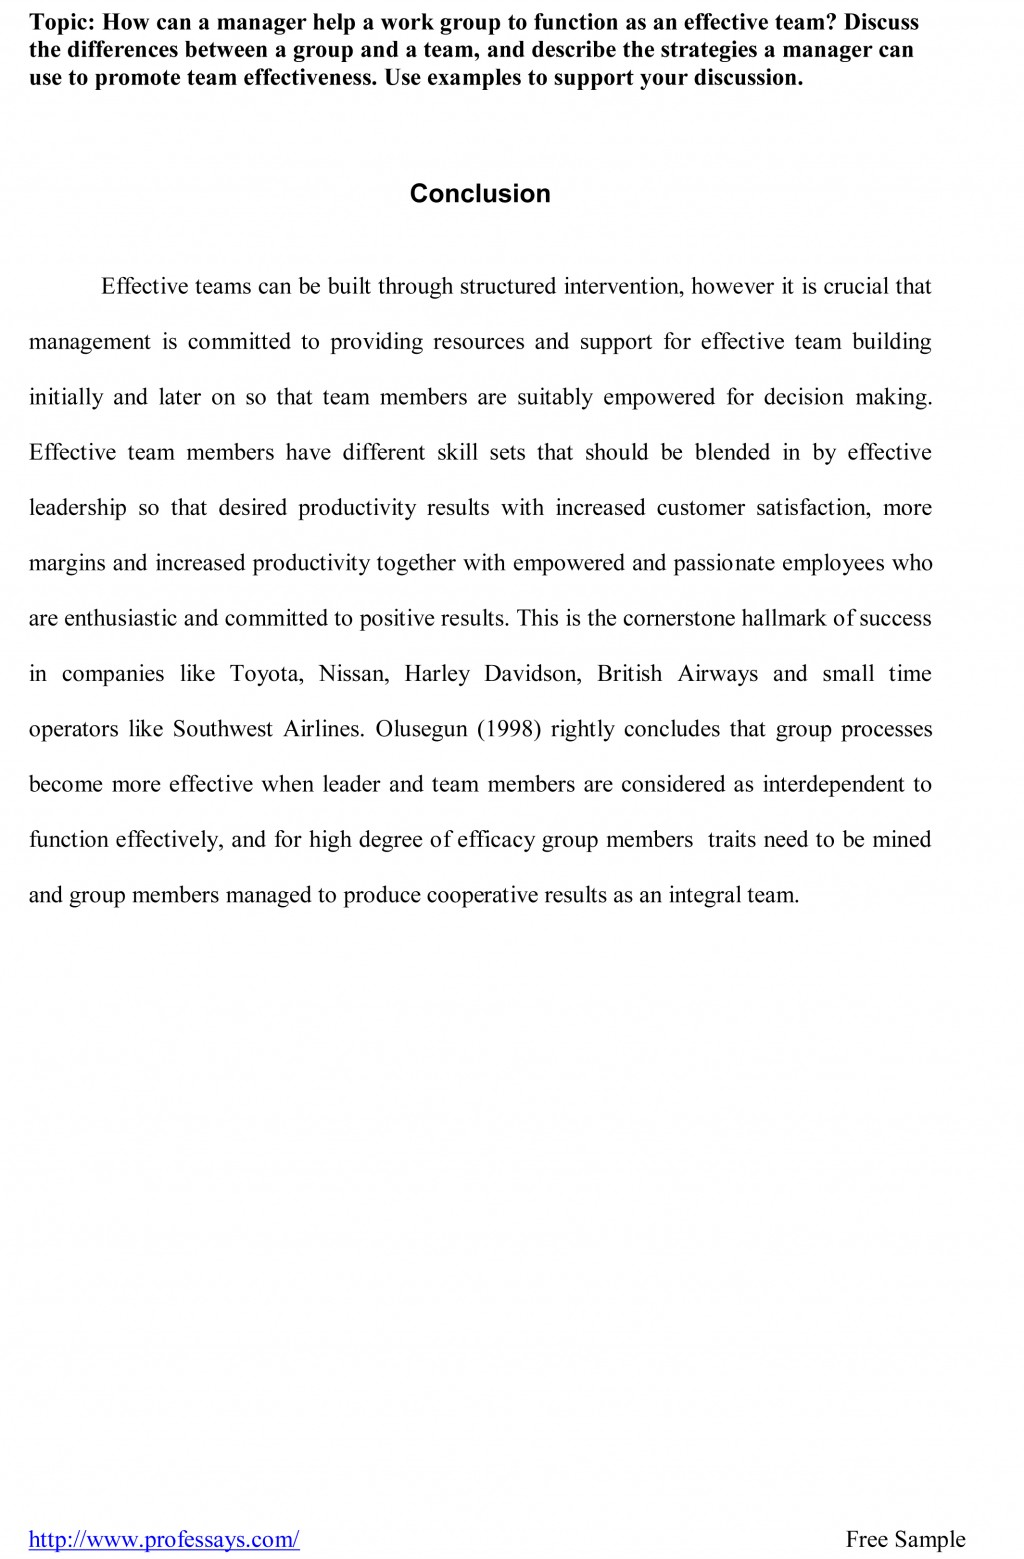 002 Research Paper Conclusion Sample For Marvelous About Smoking Generator On Teenage Pregnancy Large